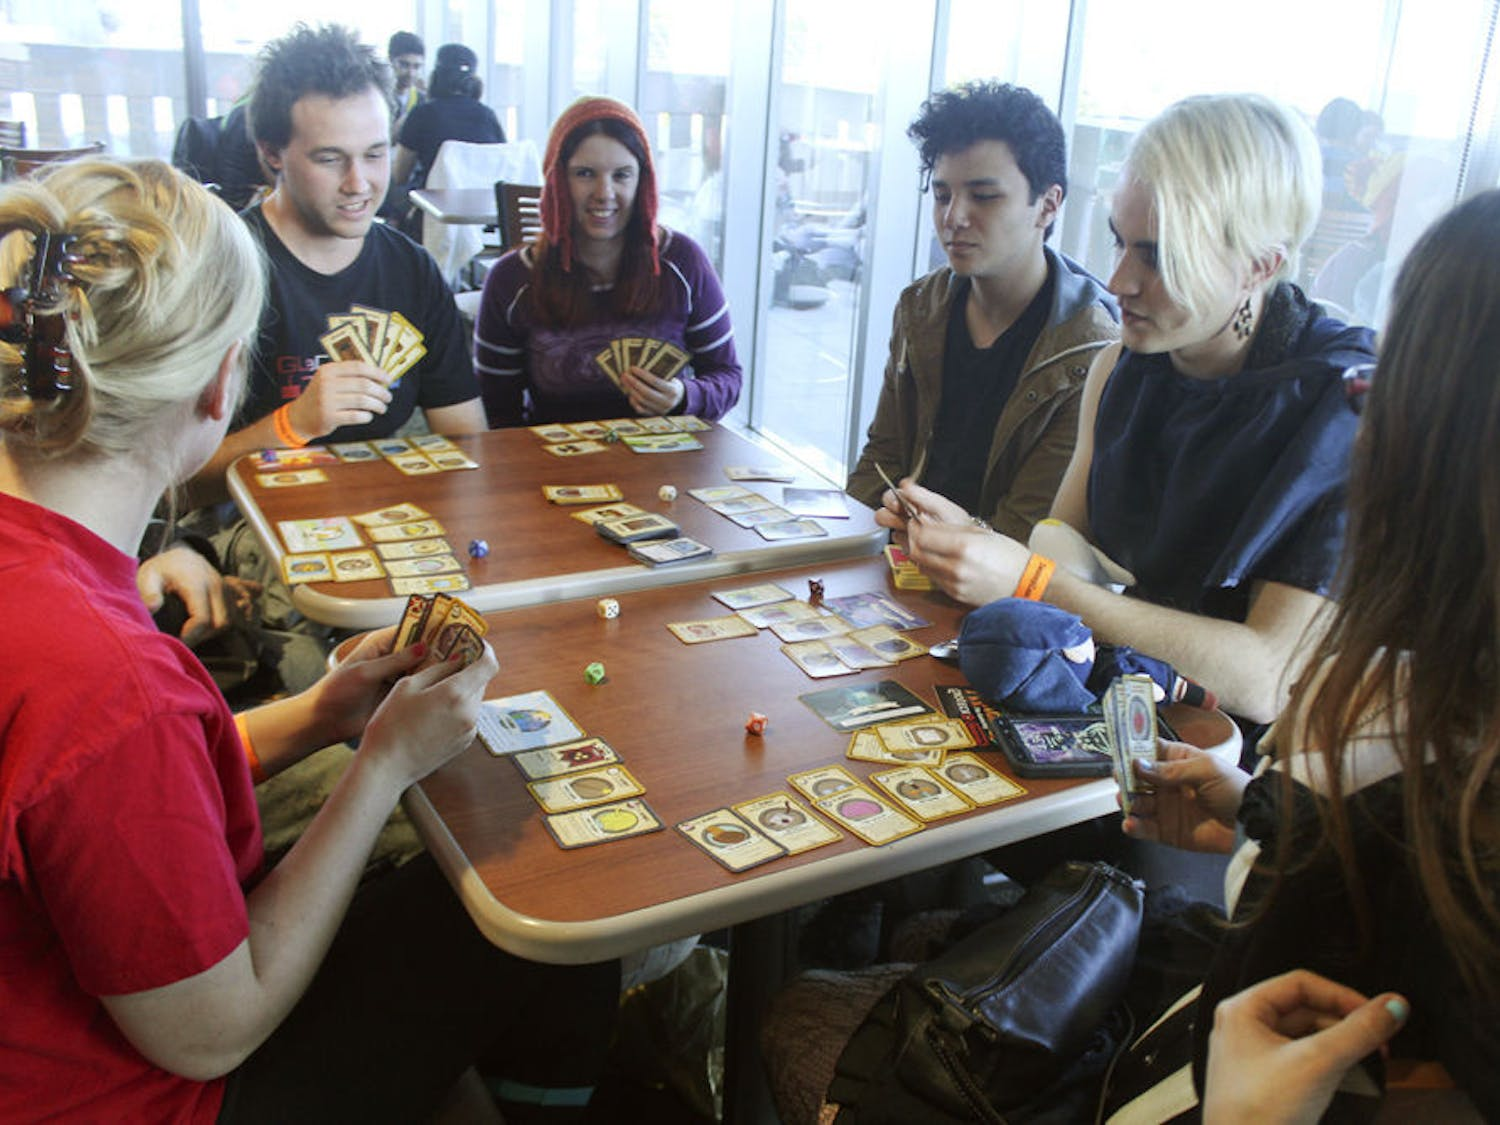 SwampCon visitors participate in a Munchkin, a card game, tournament Saturday during SwampCon at the Arrendondo Cafe in the Reitz Union.